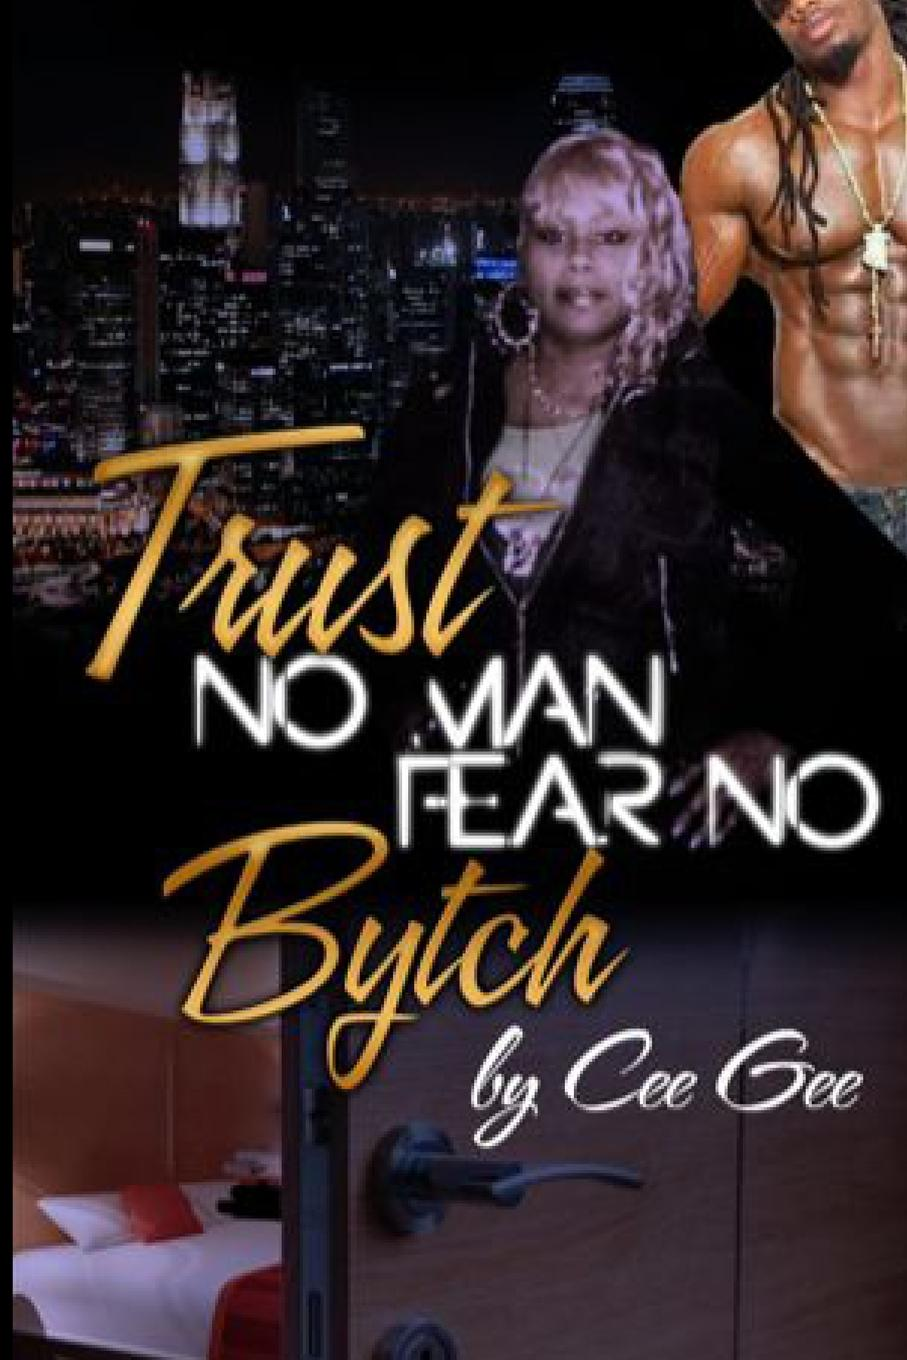 Cee Gee Trust No Man Fear No Bytch thom poole play it by trust